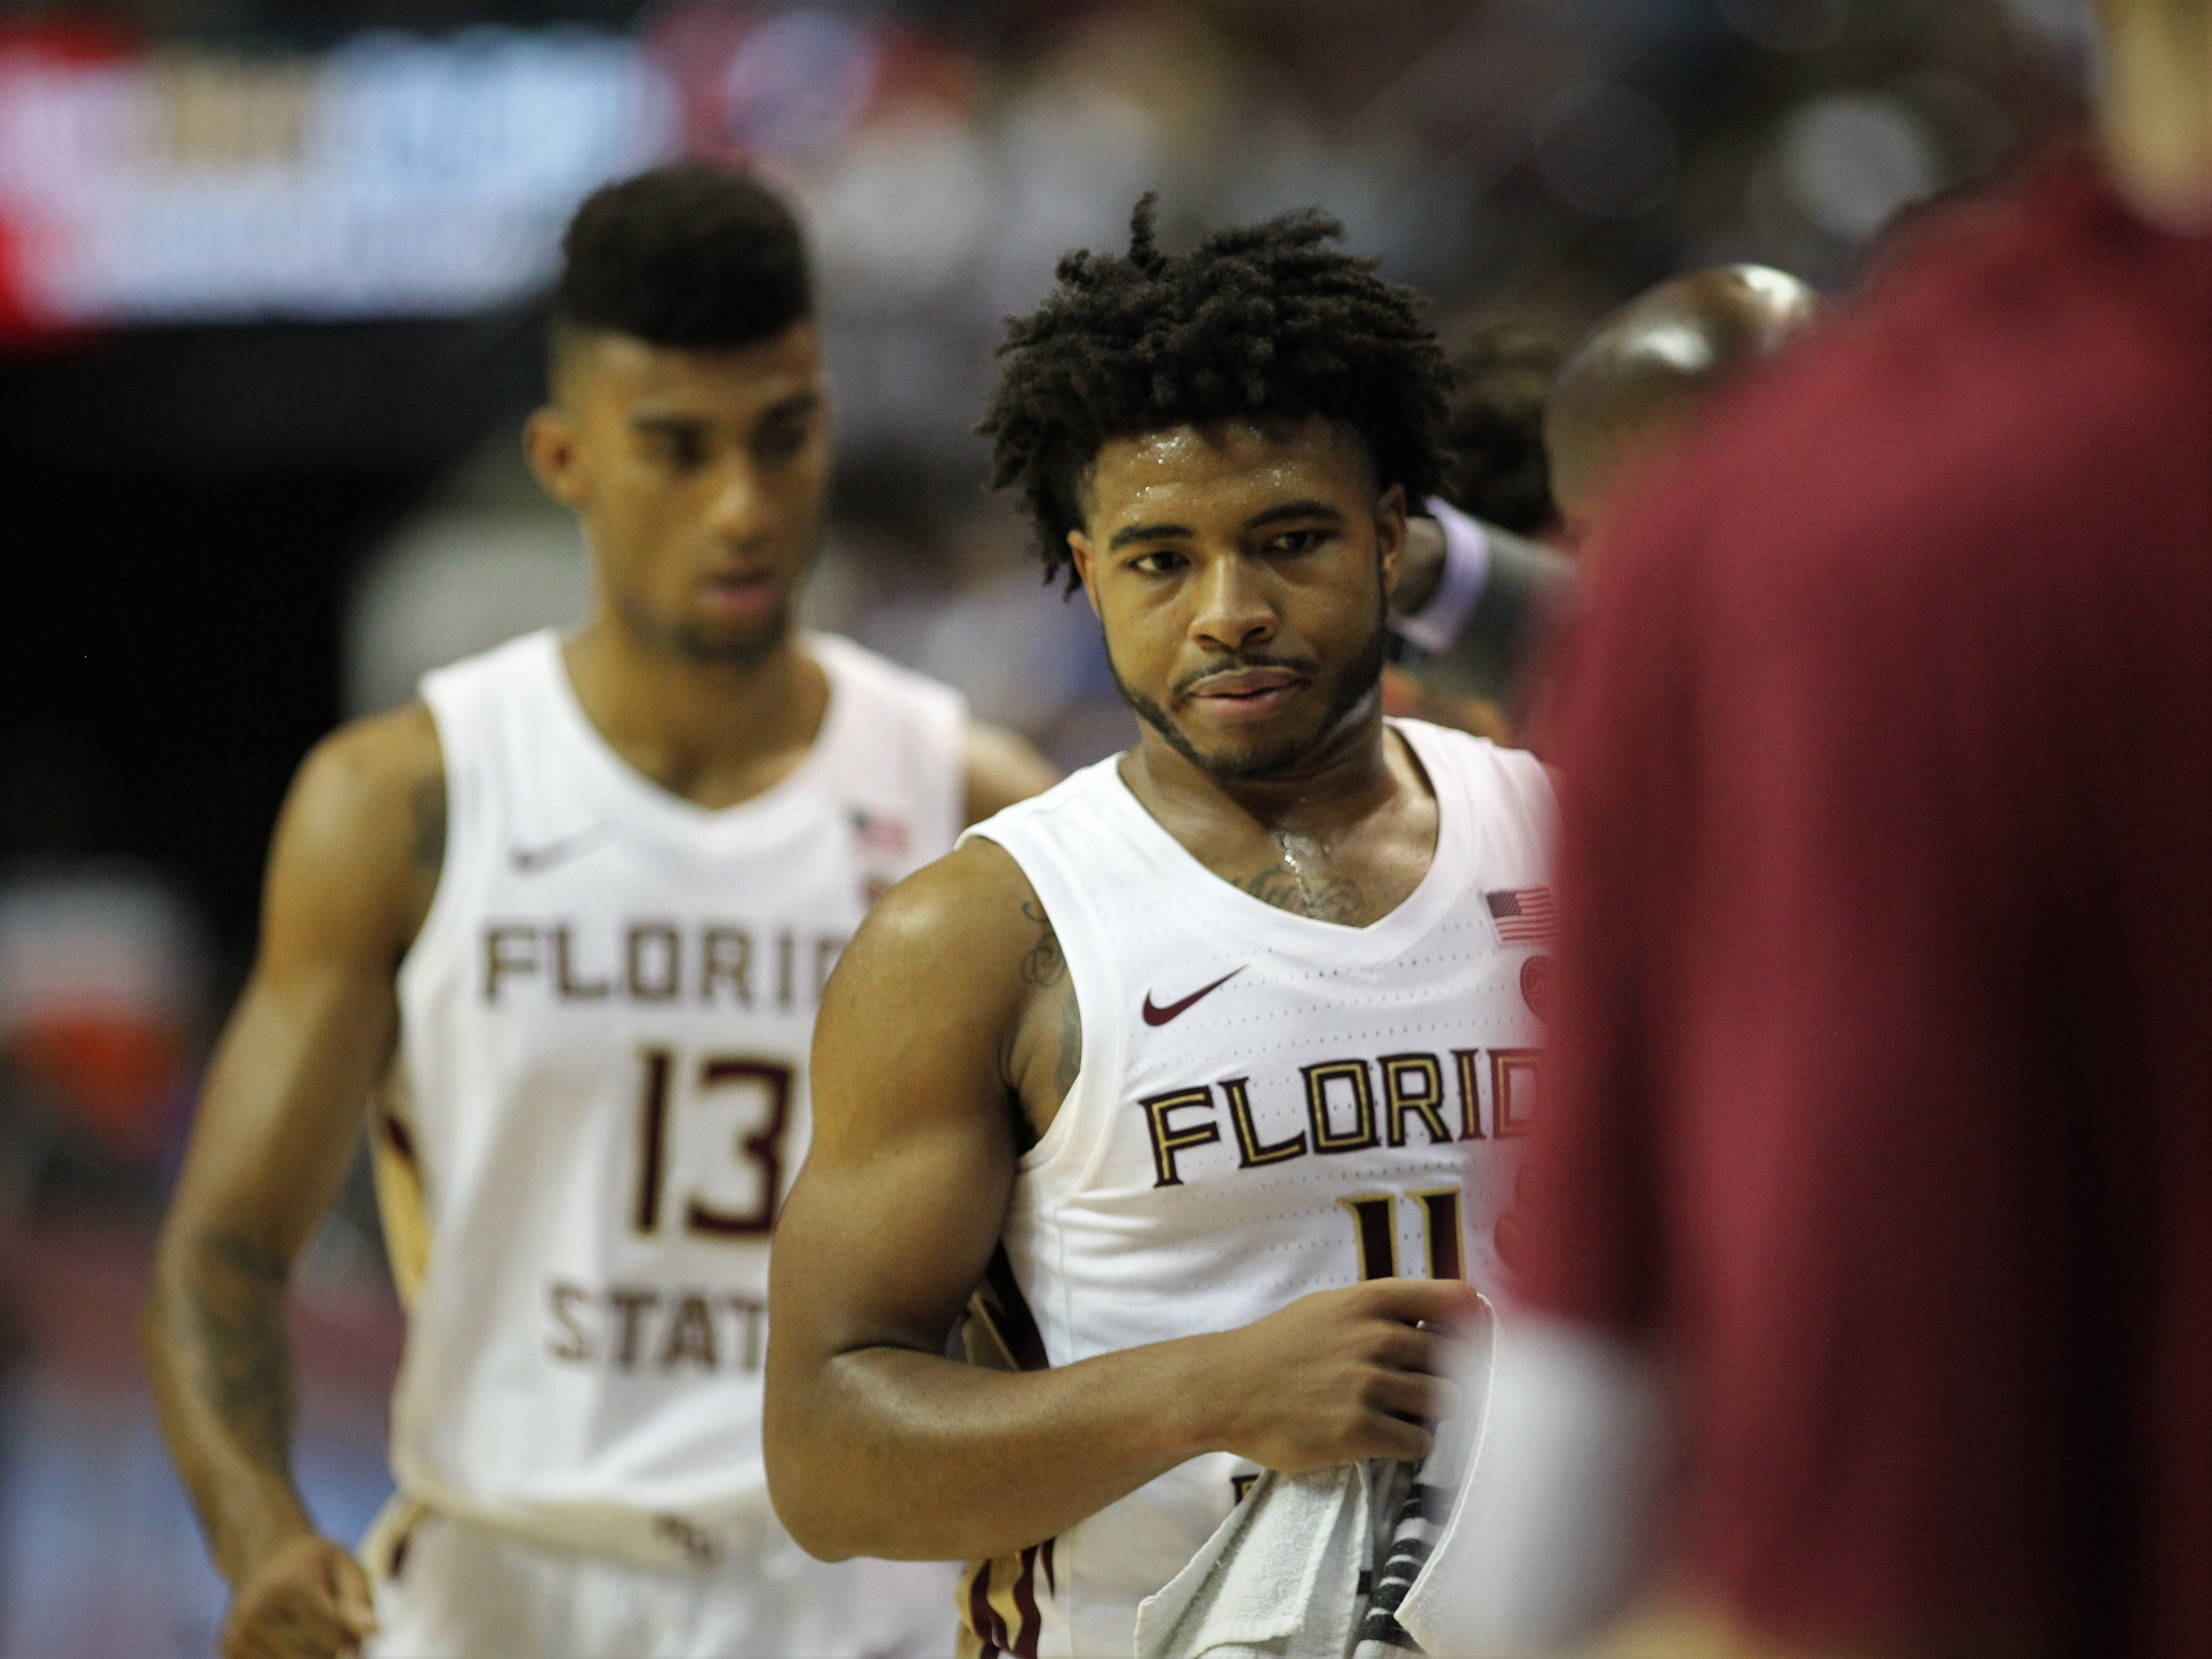 Florida State's David Nichols (11) and Anthony Polite (13)  head to the bench after successful minutes during the Sunshine Showdown game against Florida on Tuesday at the Tucker Civic Center.